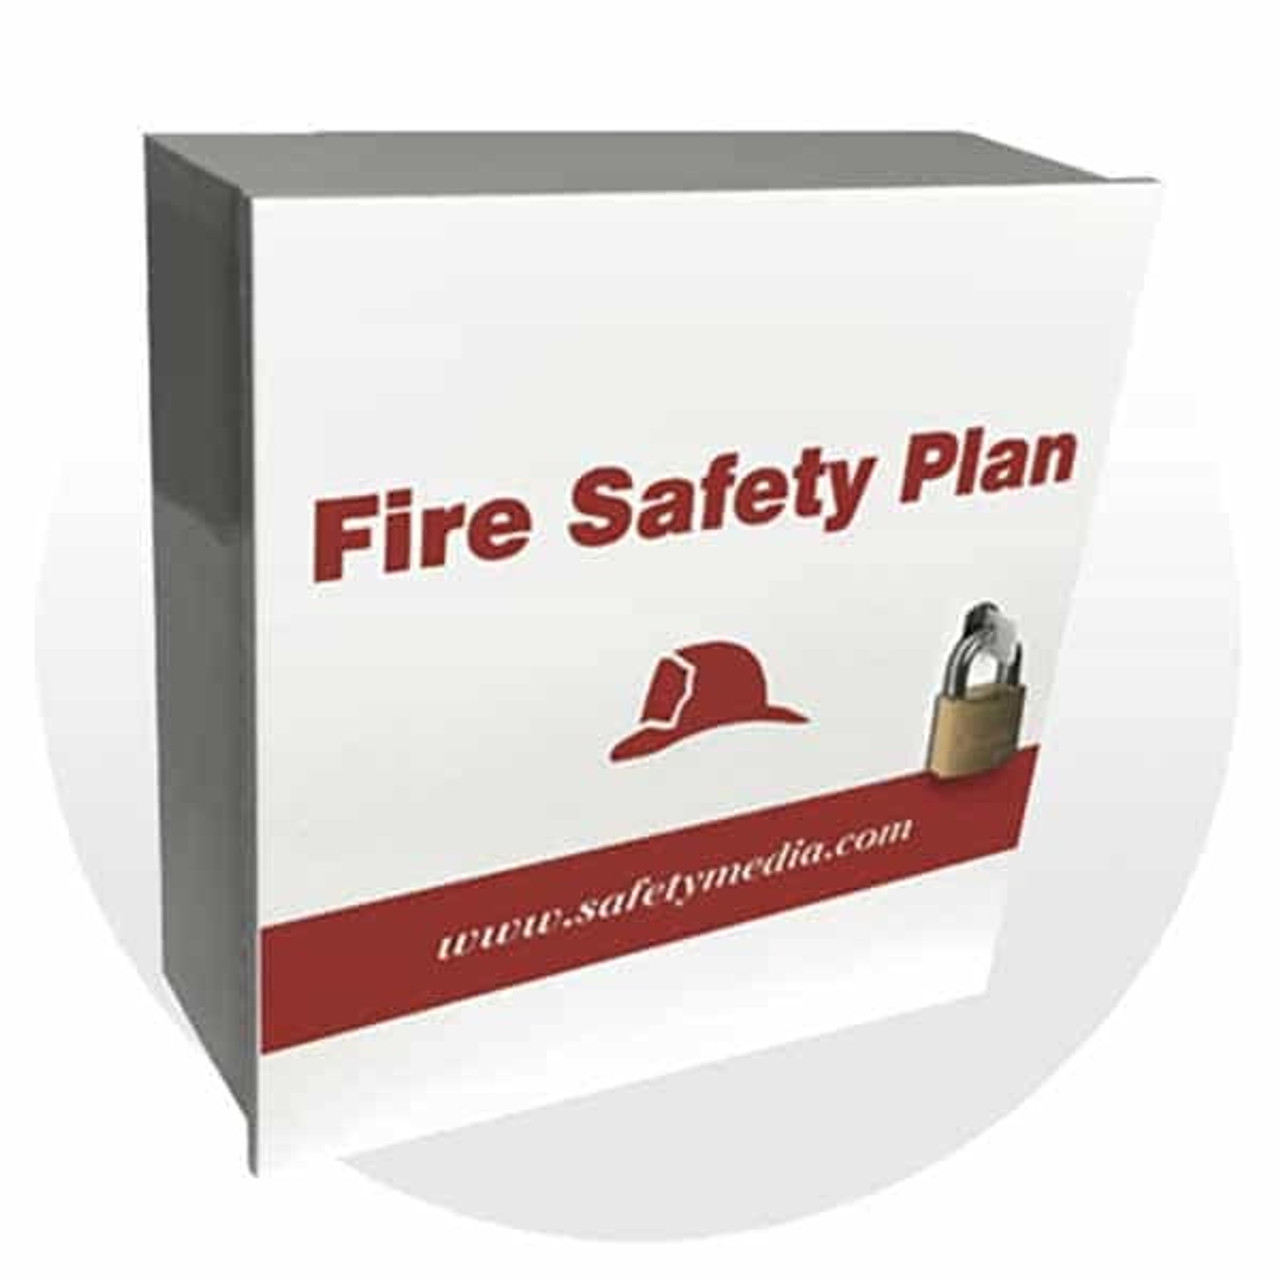 Fire Safety Plan Boxes & Accessories